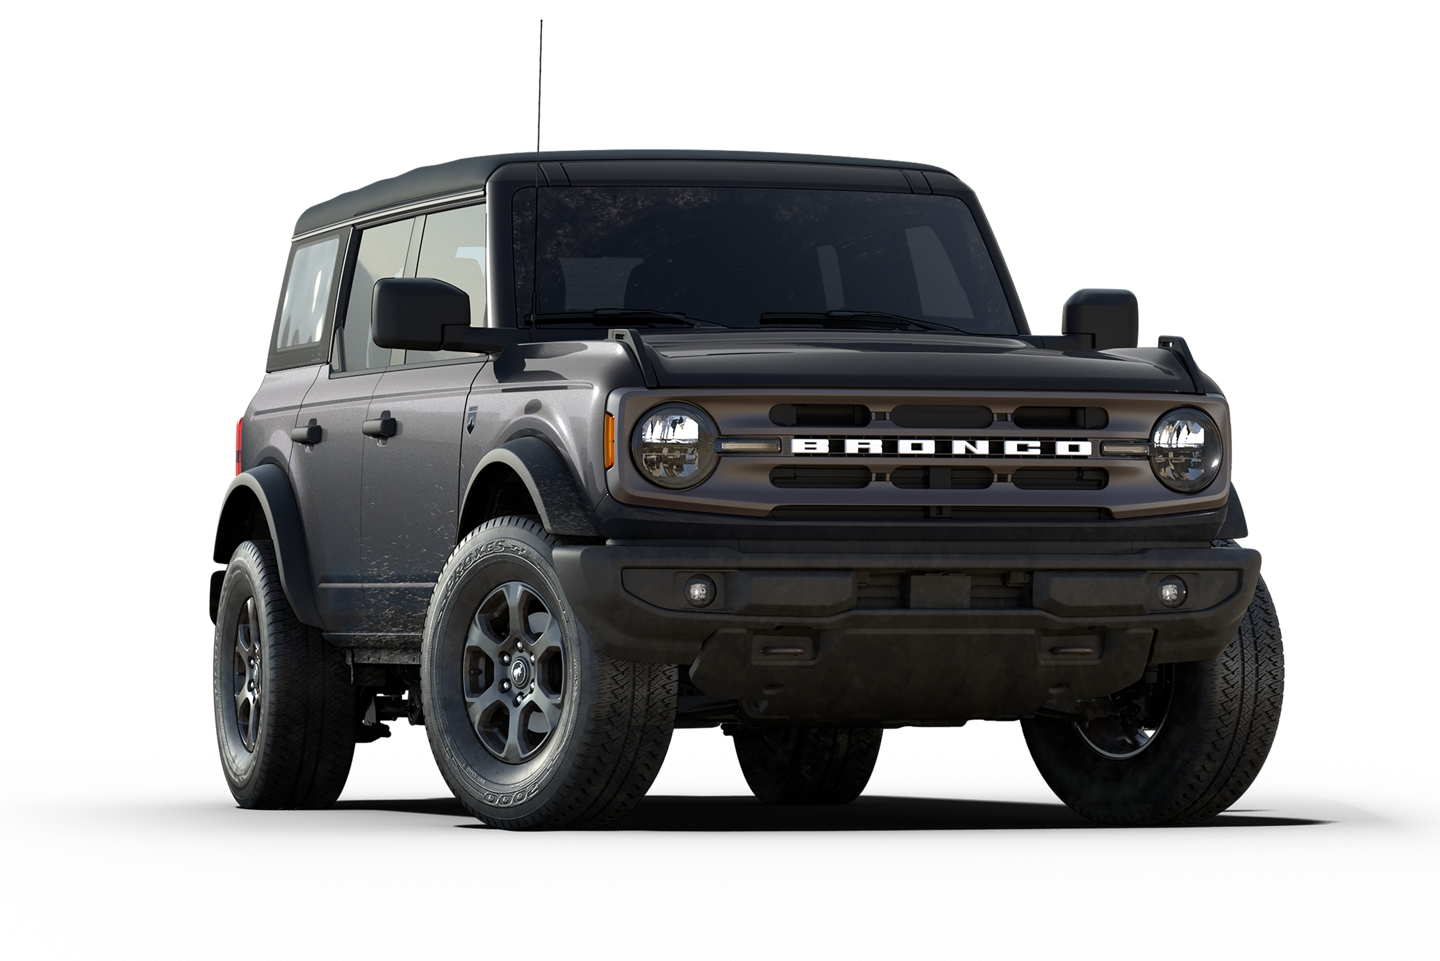 2021 Ford Bronco Big Bend model